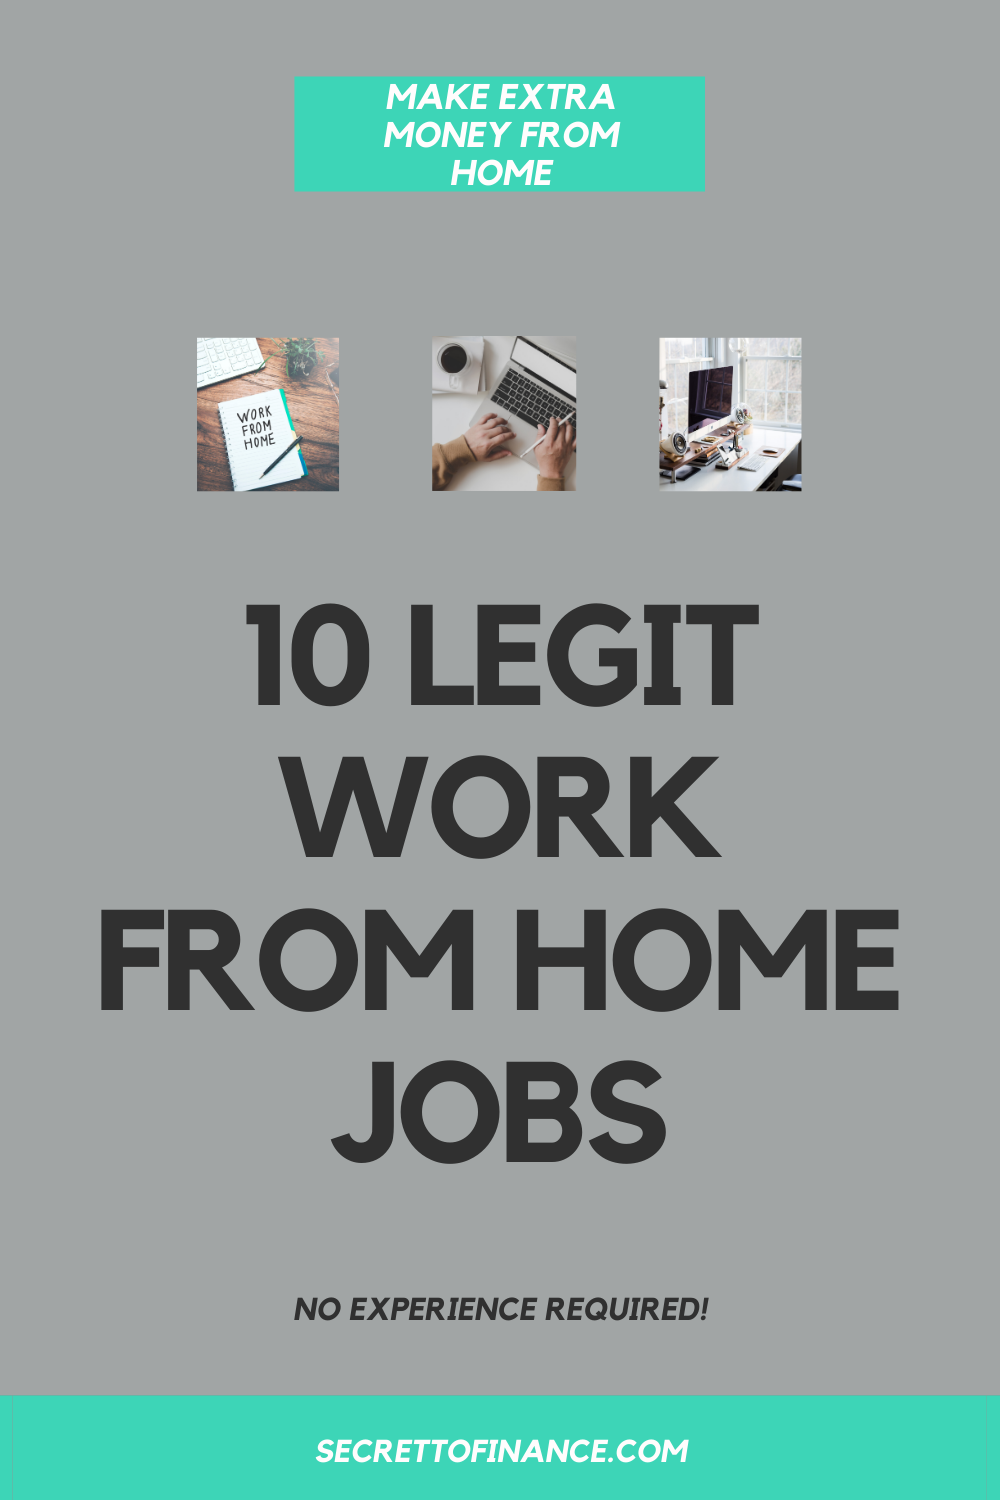 10 legit work from home jobs that require no experience in